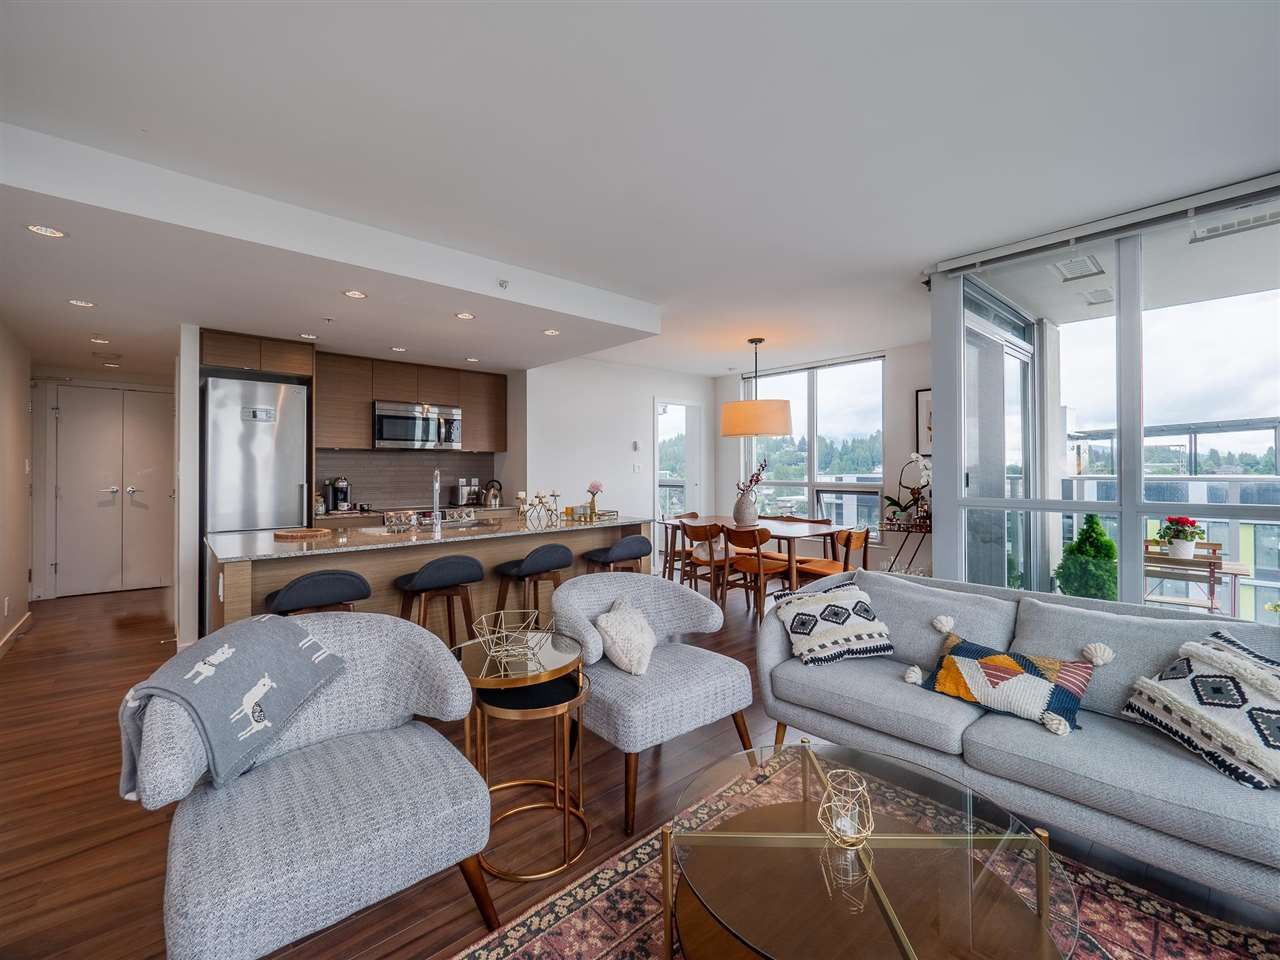 1607 135 E 17TH STREET - Central Lonsdale Apartment/Condo for sale, 1 Bedroom (R2603489) - #8